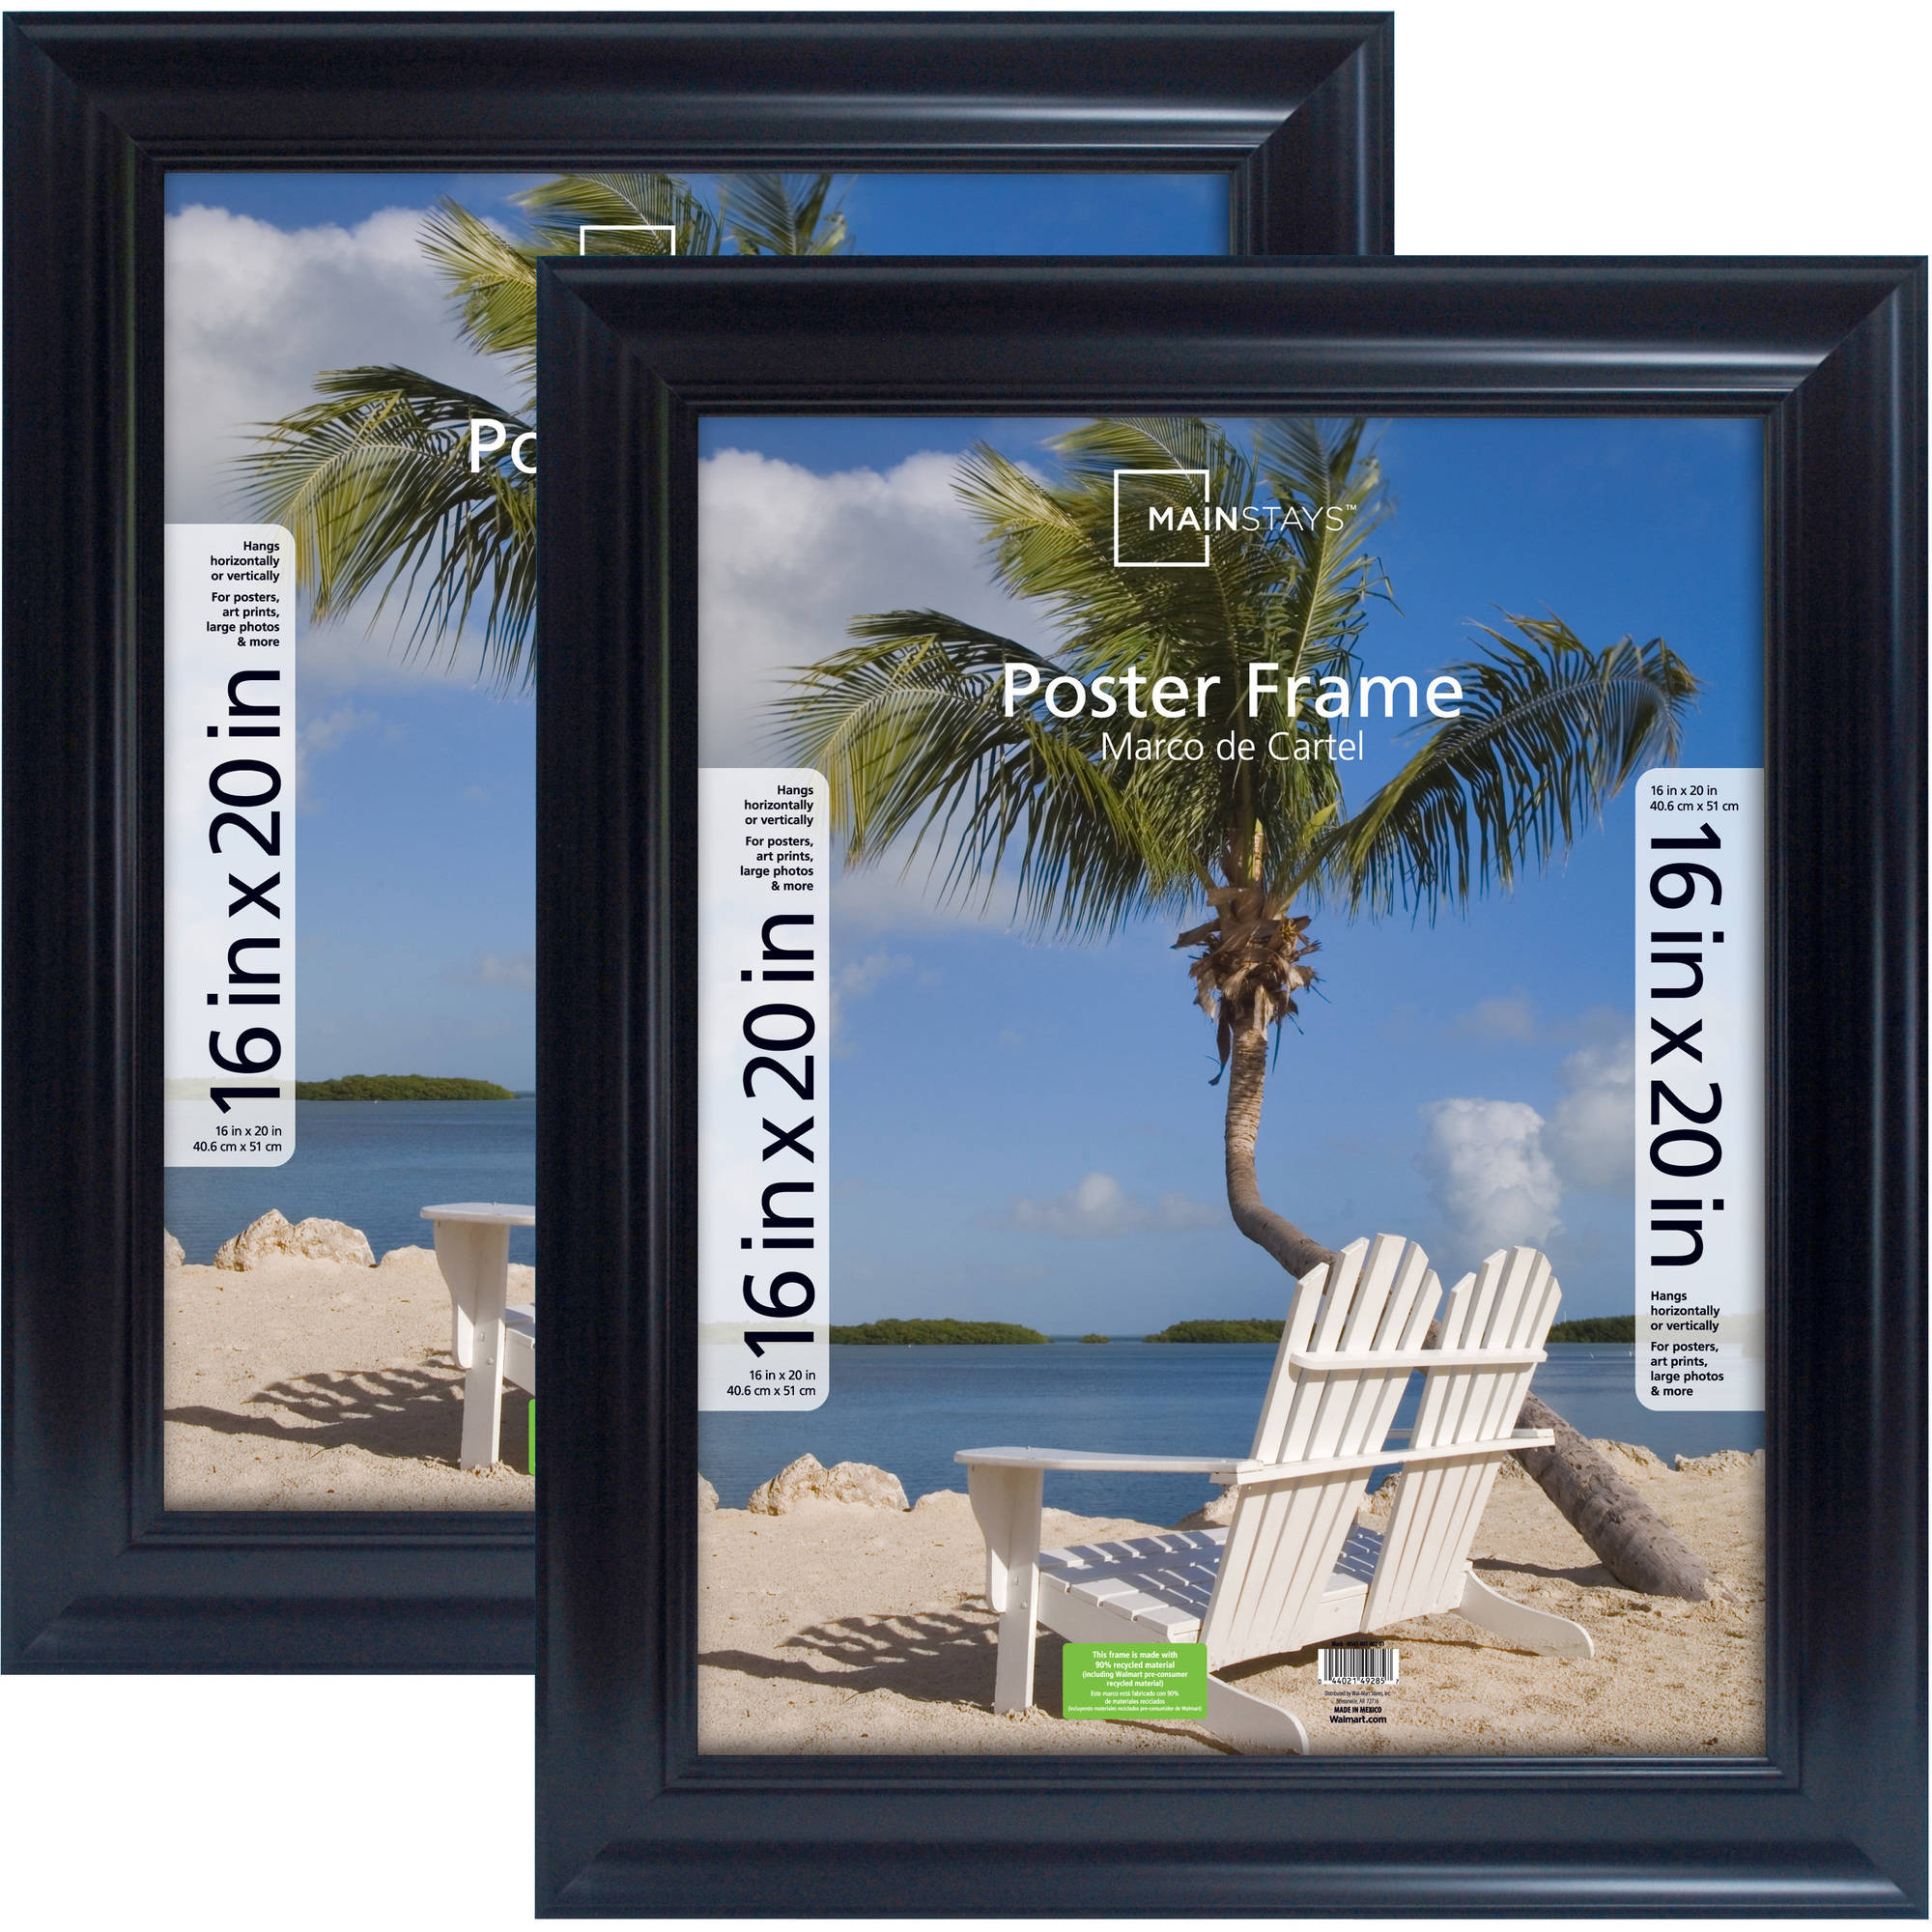 What Is A Poster Frame - Frame Design & Reviews